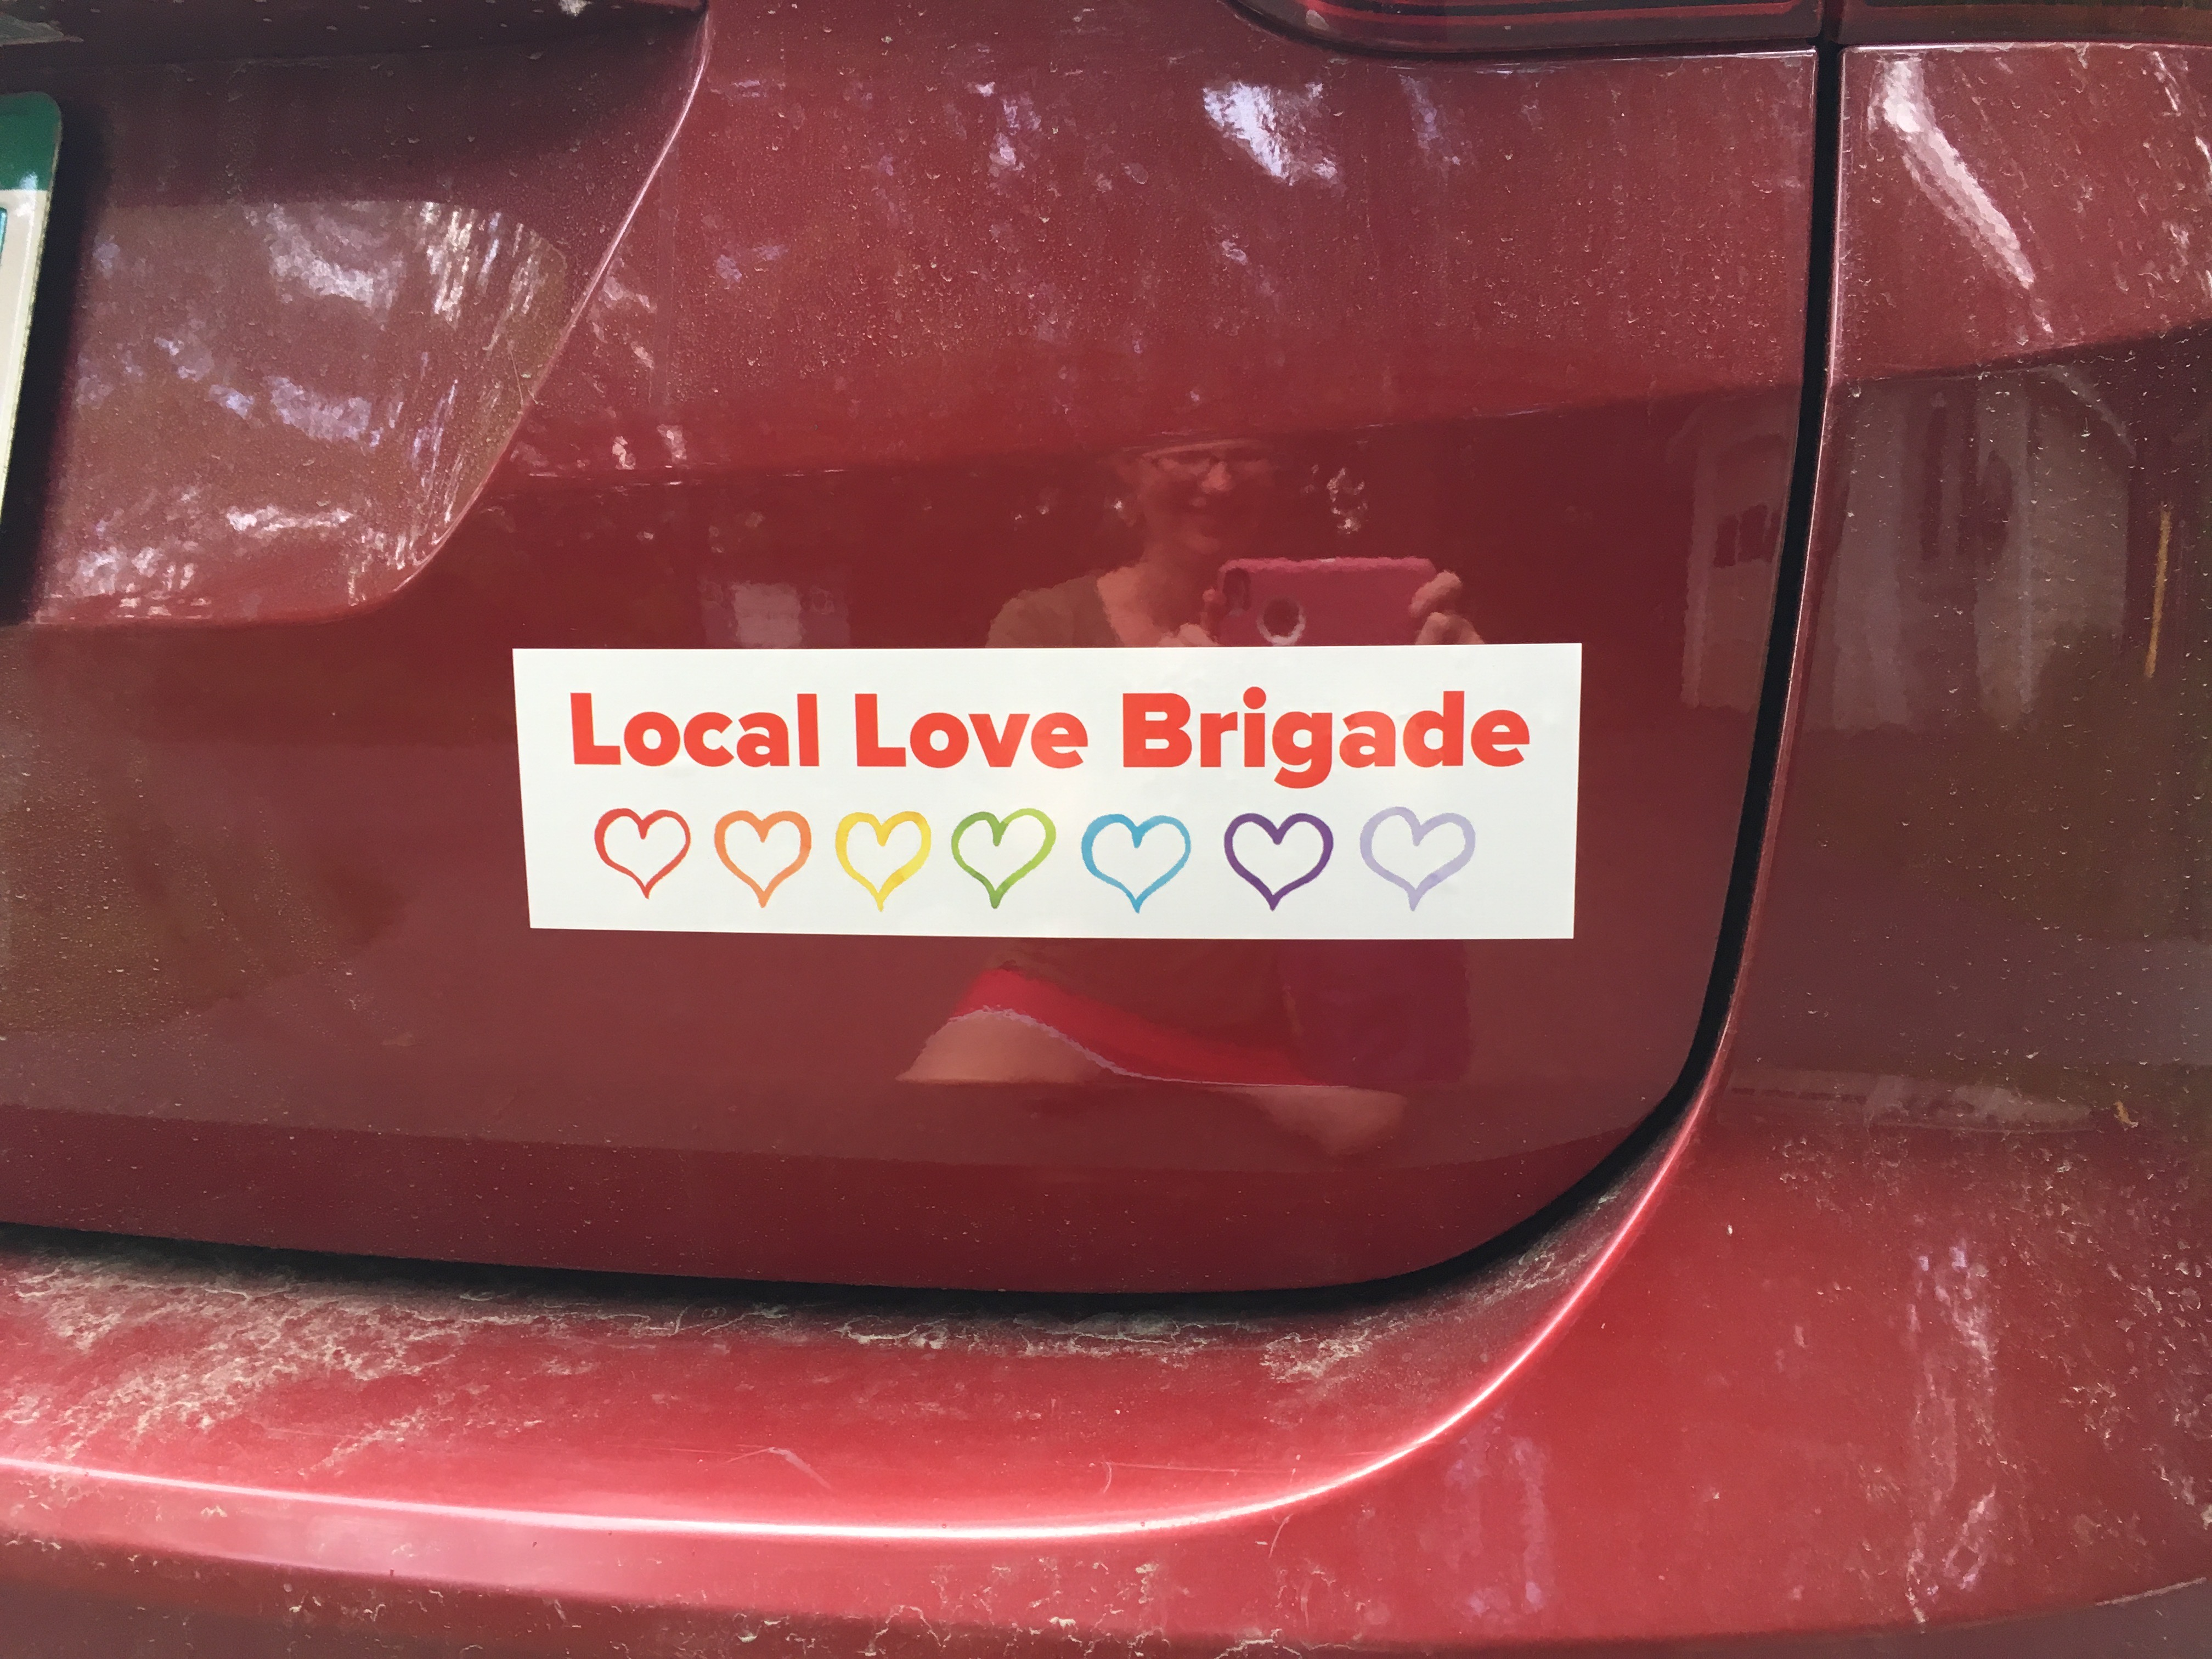 Local Love Brigade bumper sticker